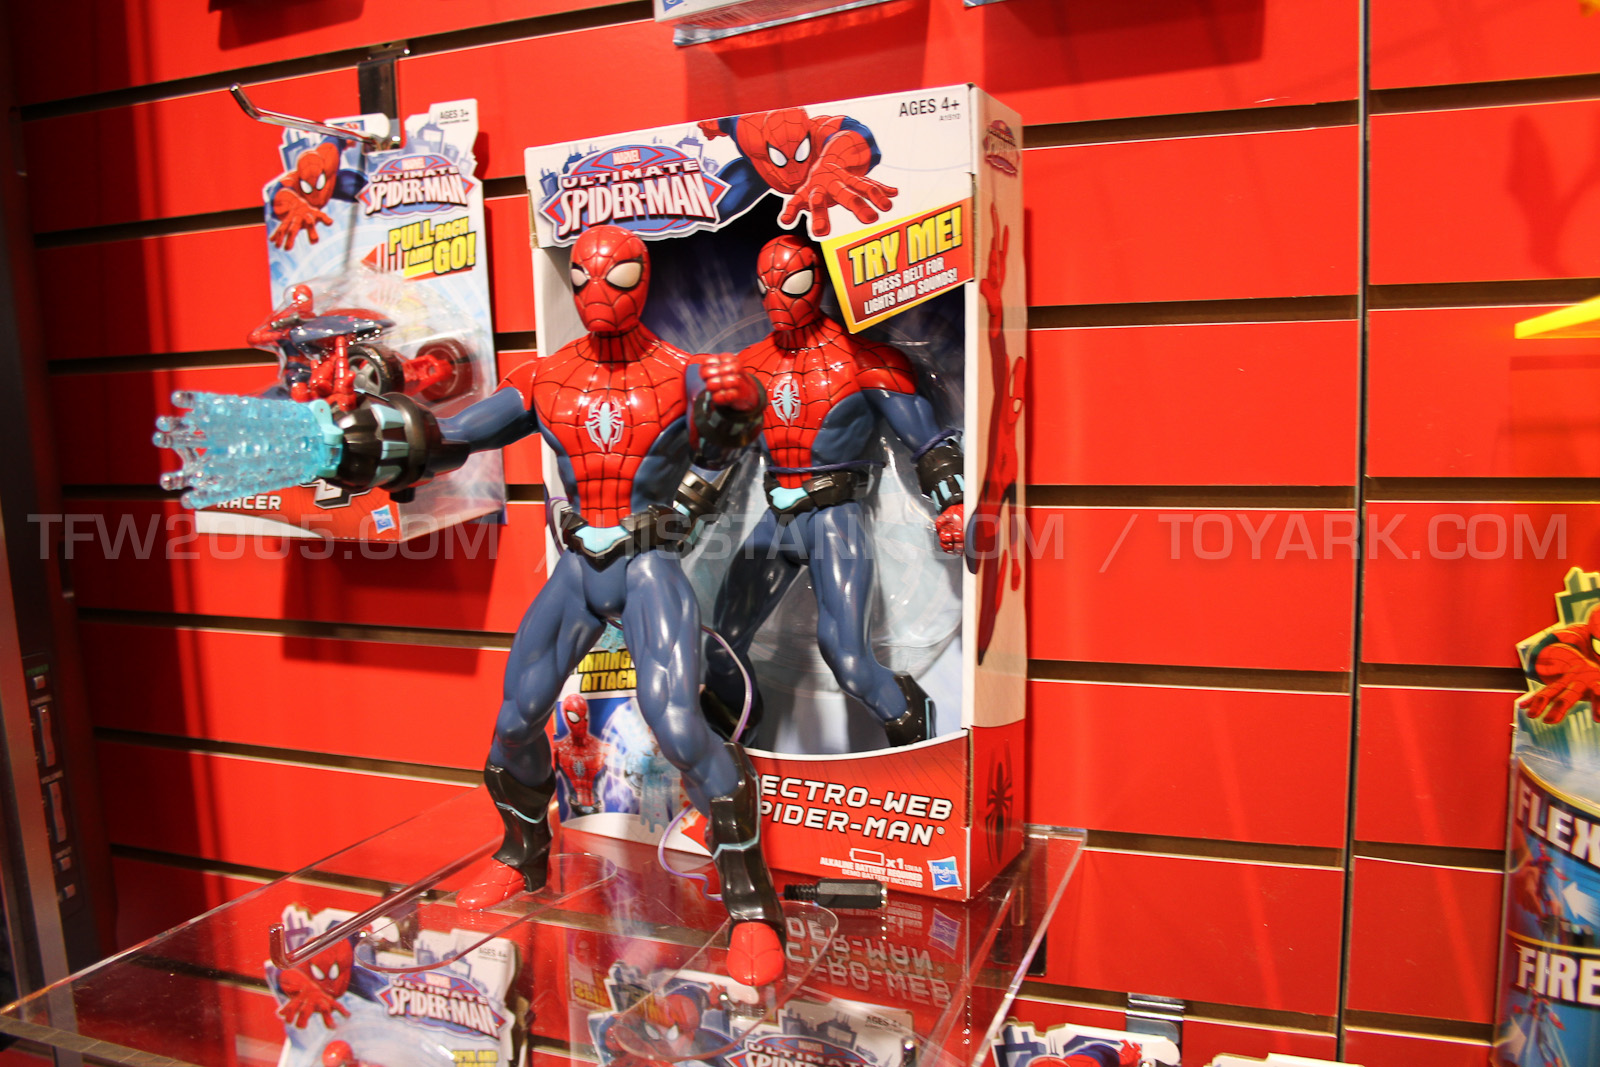 Spider man toys from toy fair 2013